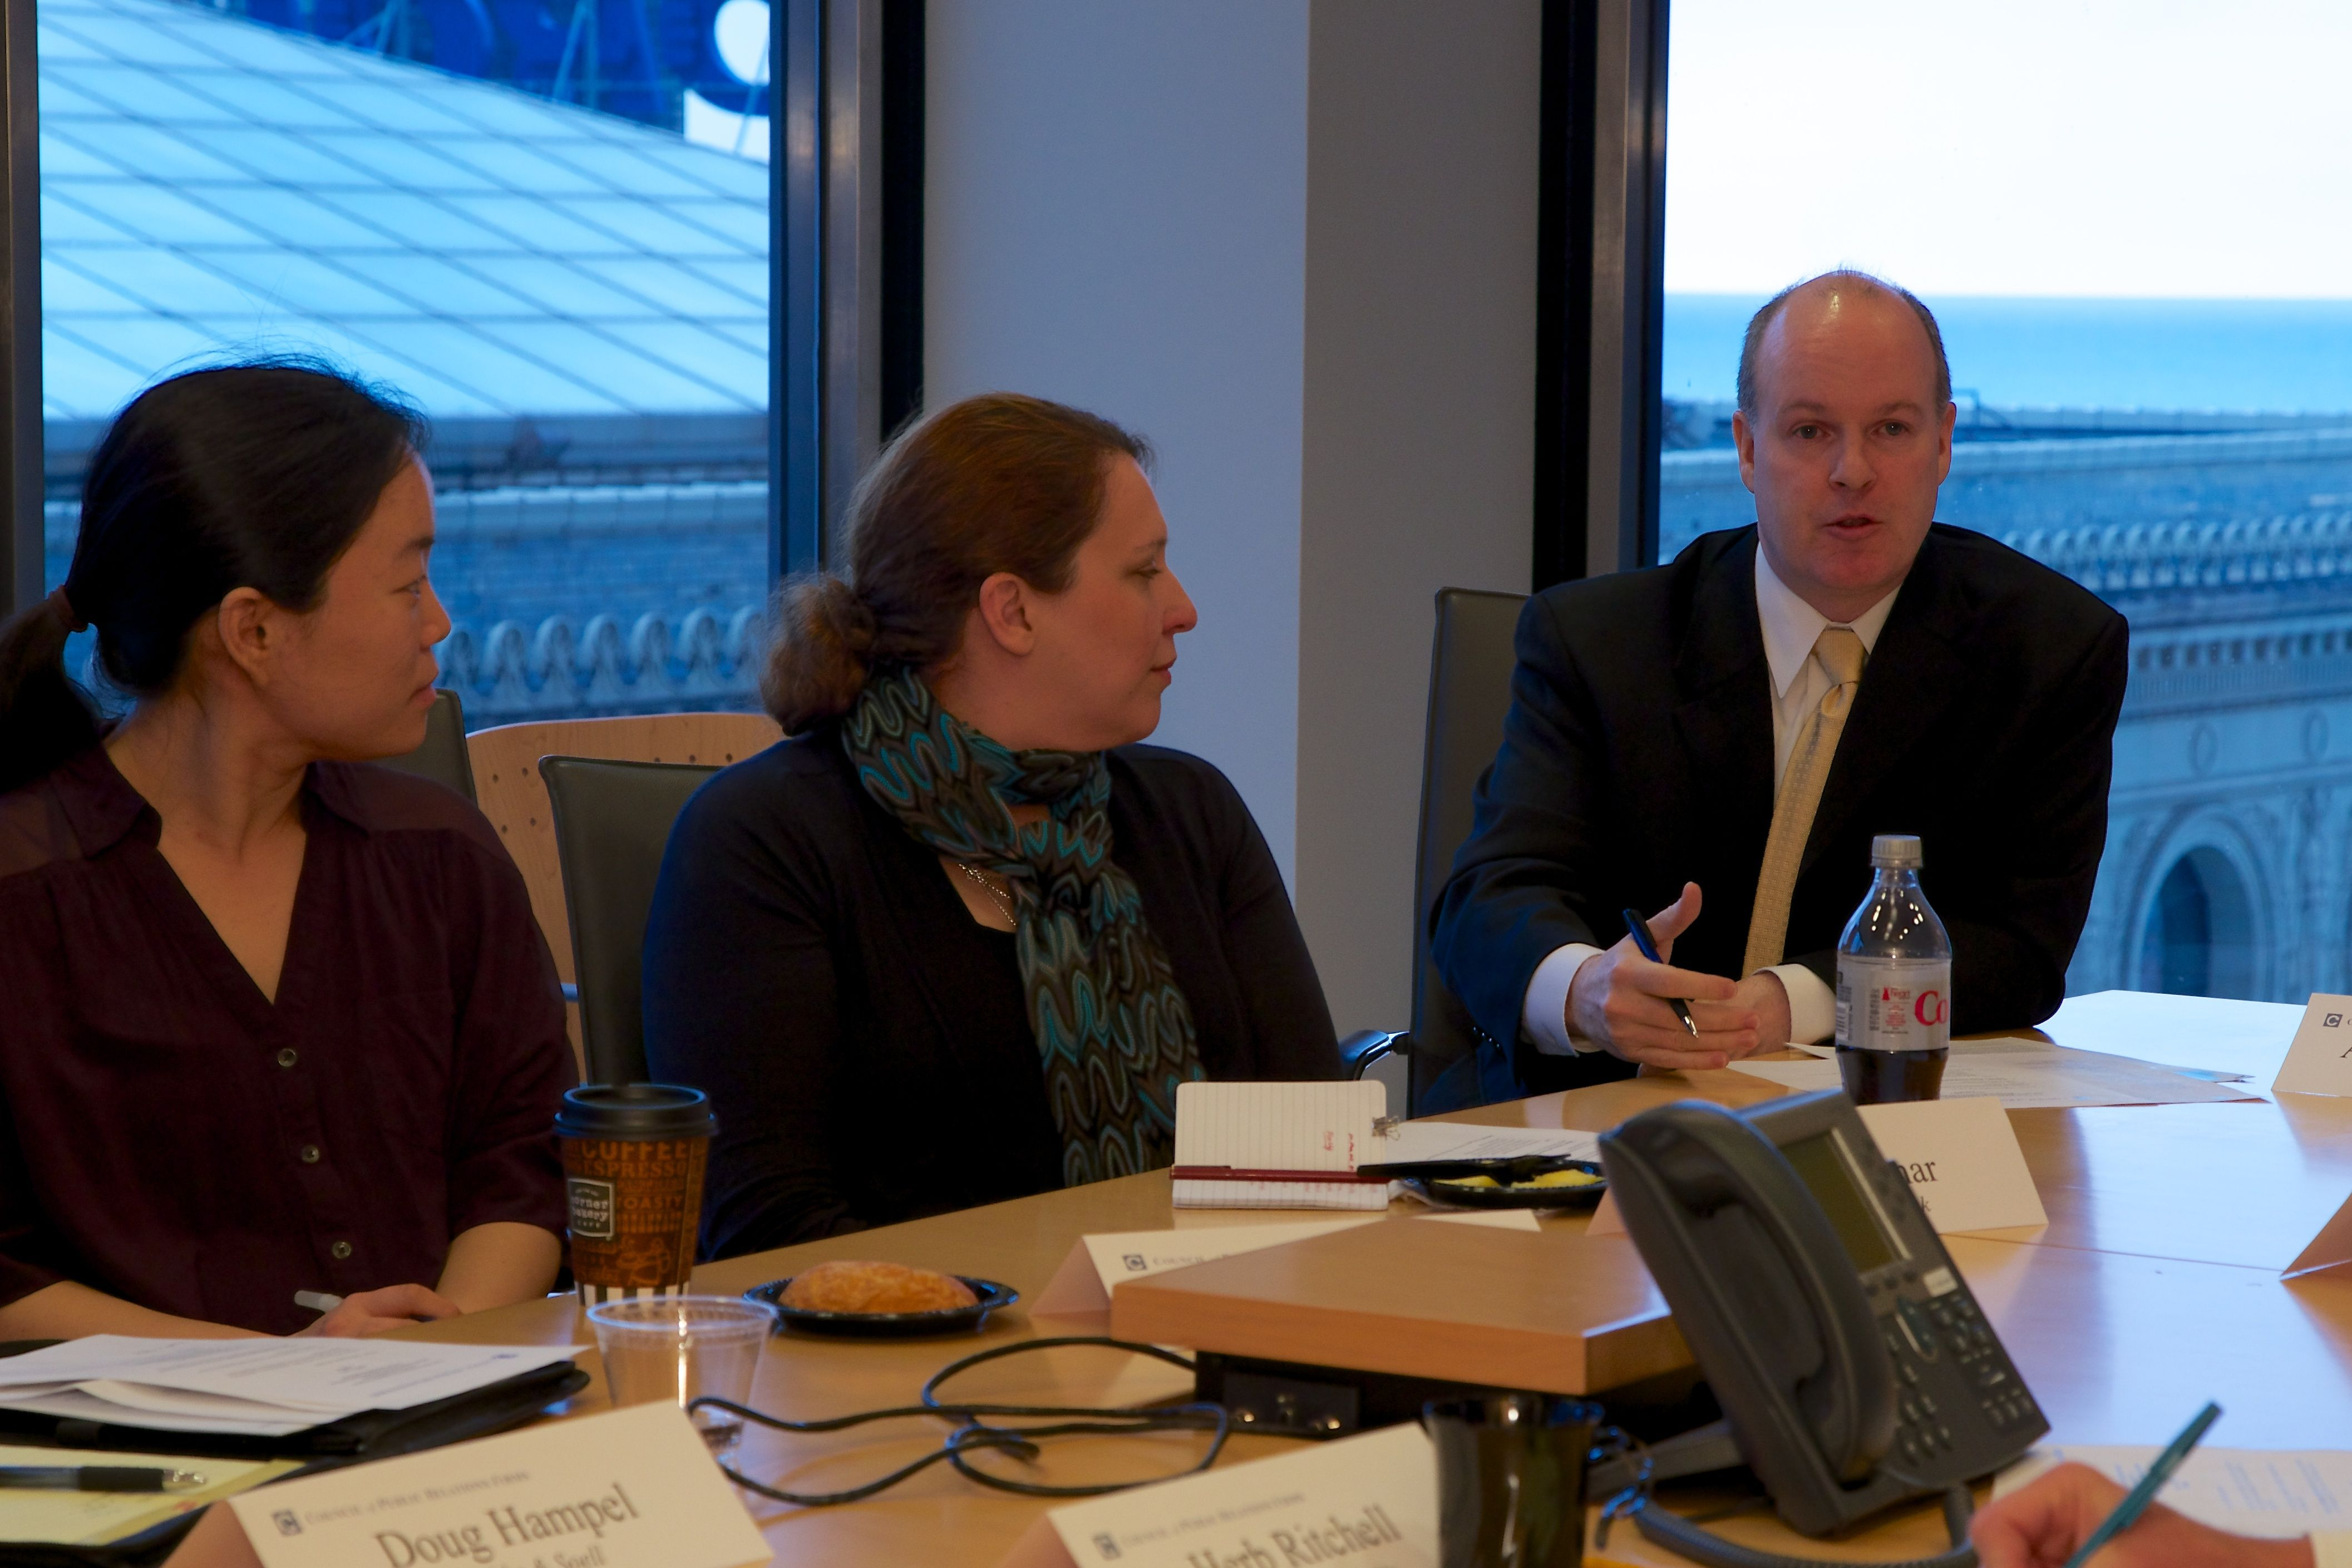 The Council of Public Relations Firms hosted a roundtable discussion featuring local PR firm leaders and college professors to discuss the future of PR talent.